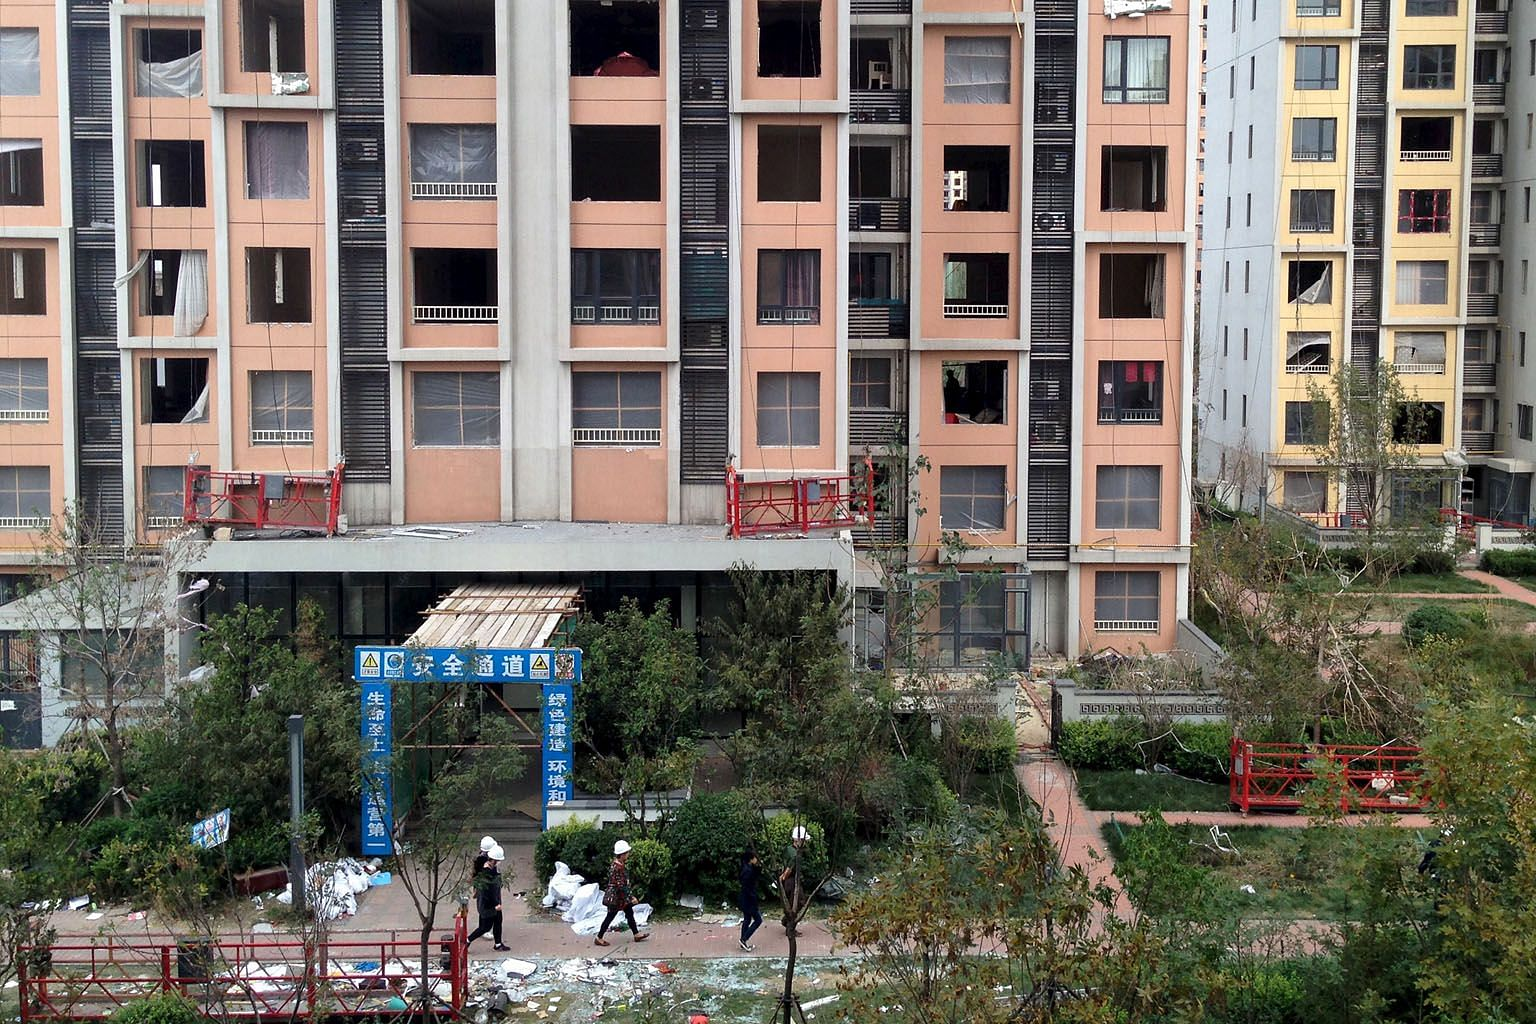 Last August's explosions killed 165 people in Tianjin and destroyed more than 300 buildings. Nearly 800 people were also injured.